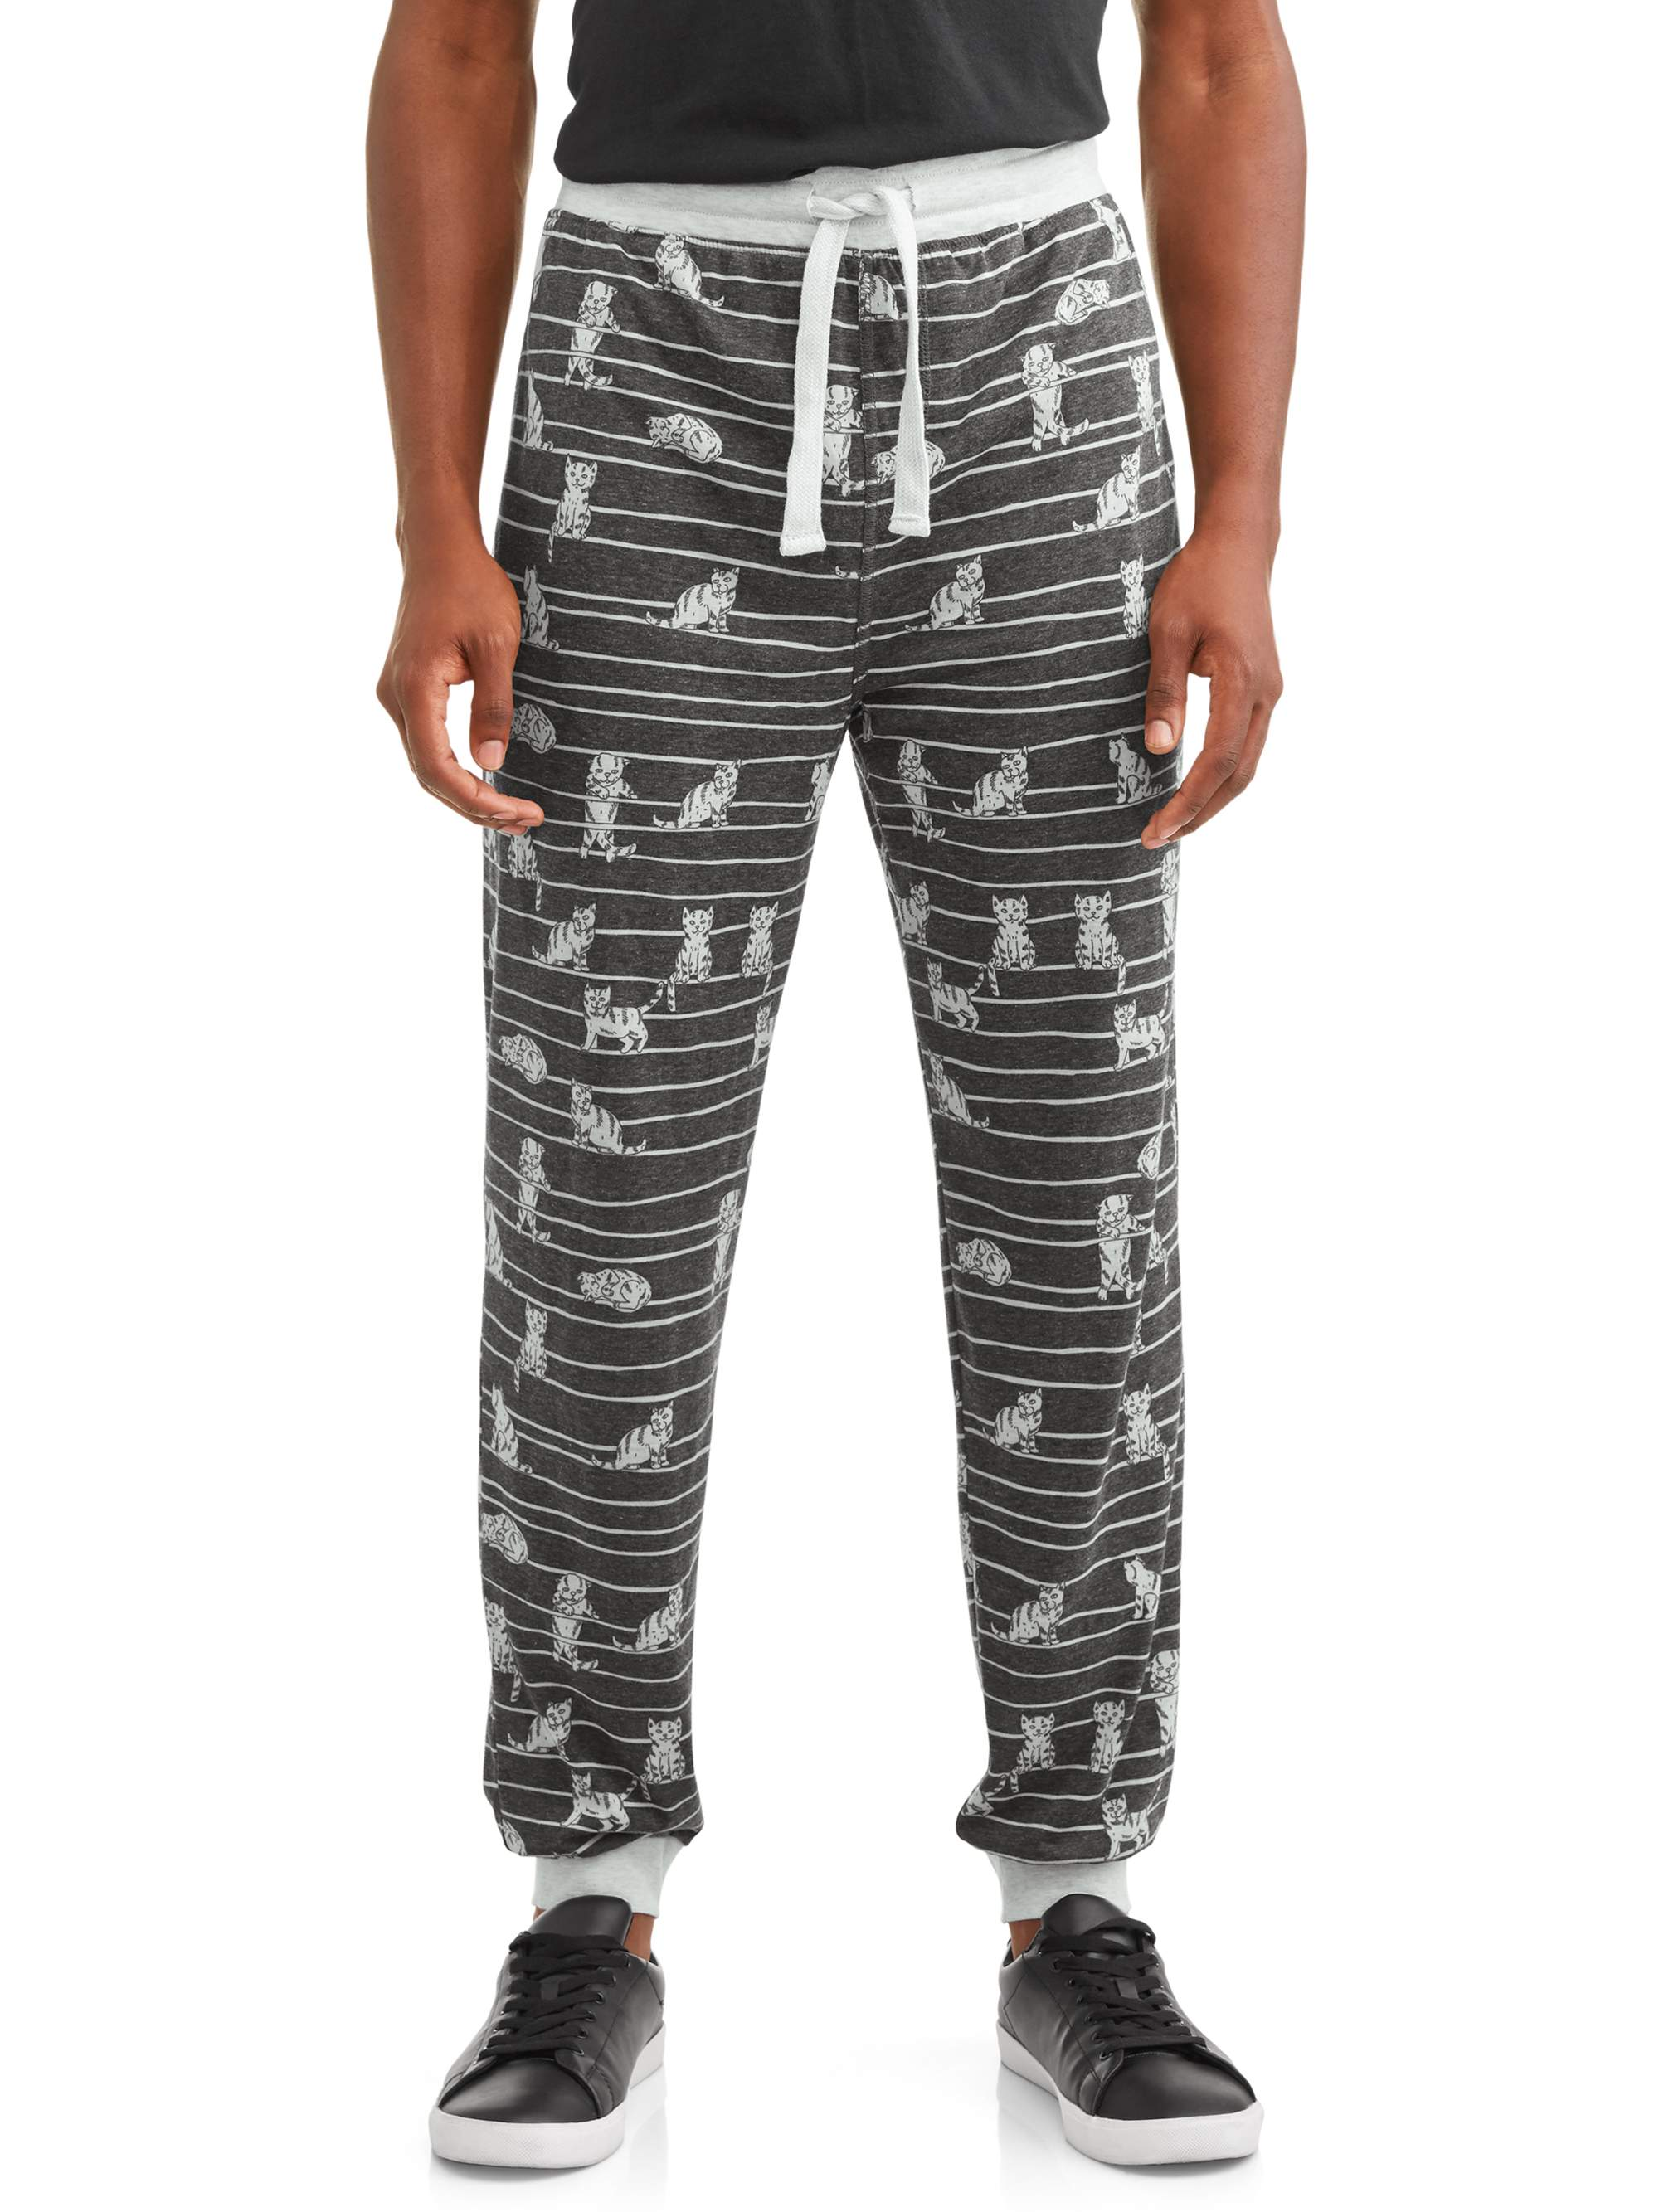 7fbb9e82622742 Top Drawer Sublimated Men s Fashion Jogger Cats Between the Lines -  Walmart.com